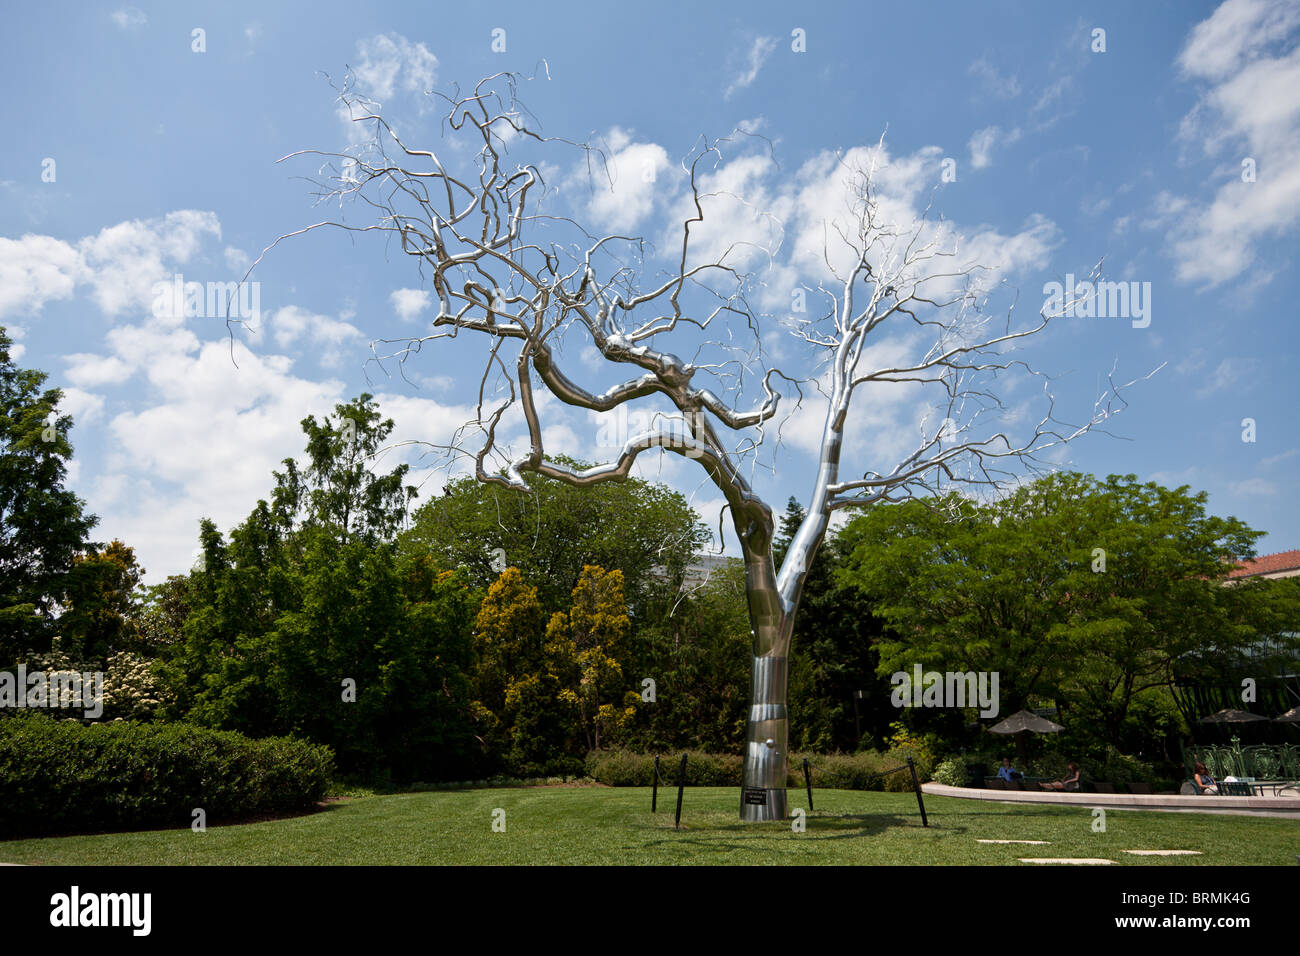 Chrome Tree In National Gallery Of Art Sculpture Garden Stock Photo Royalty Free Image